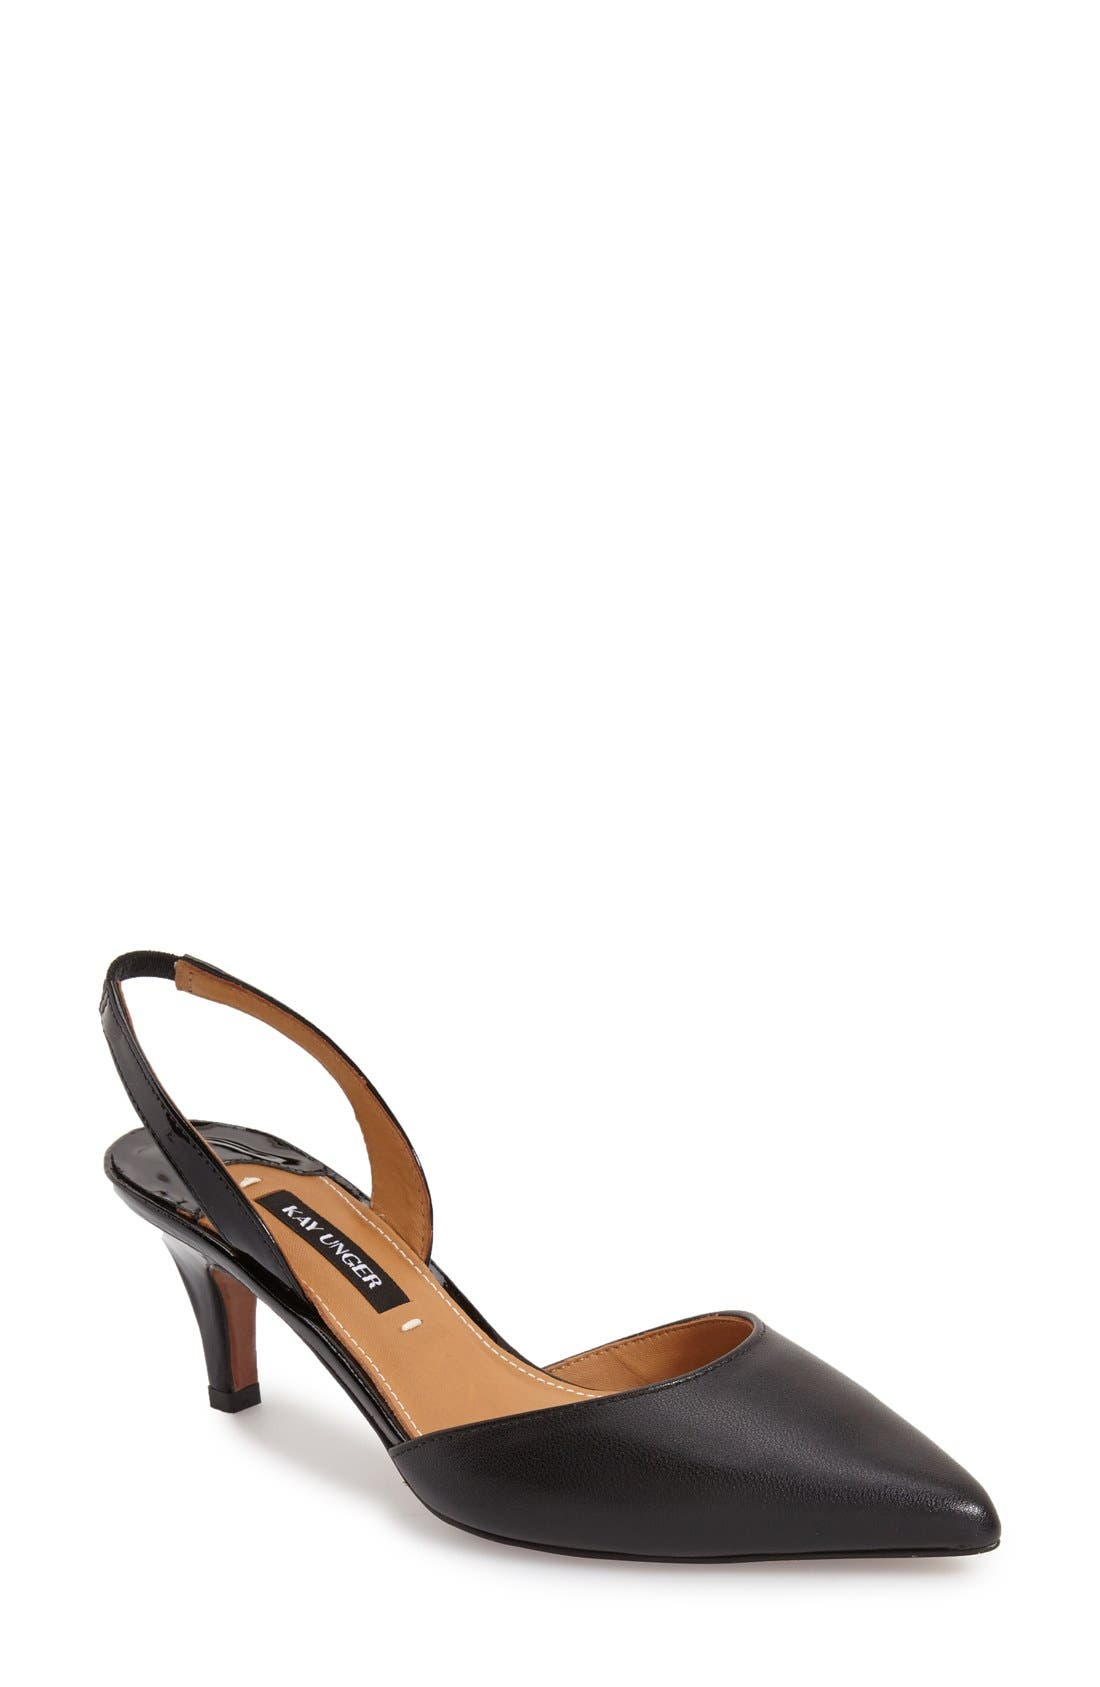 Alternate Image 1 Selected - Kay Unger 'Baylee' Slingback Pointy Toe Pump (Women)